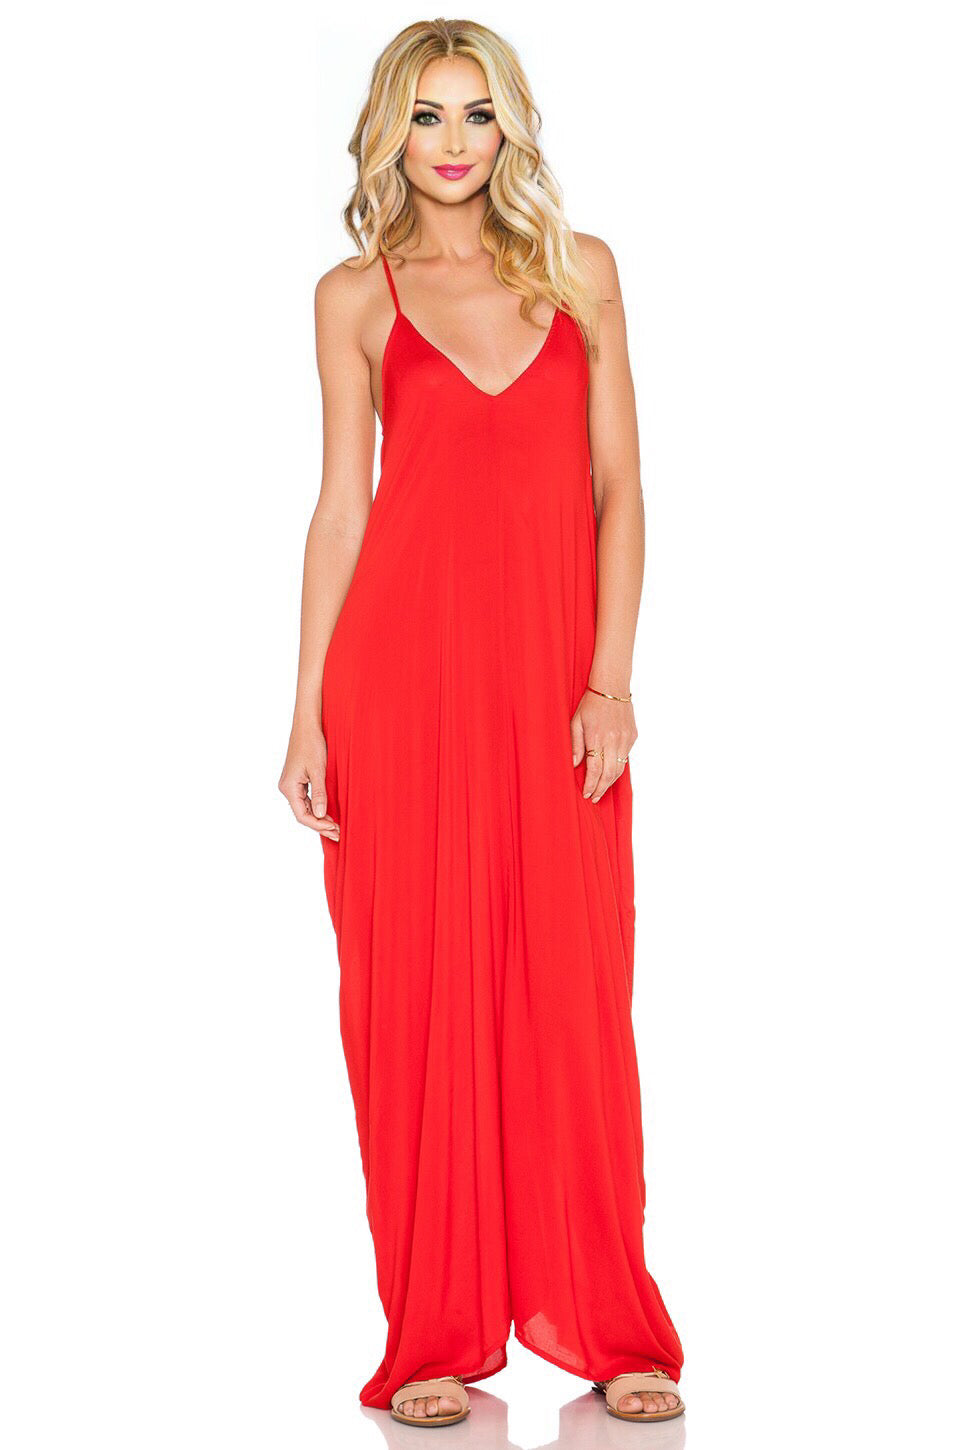 Nala Flow Maxi Dress In Red